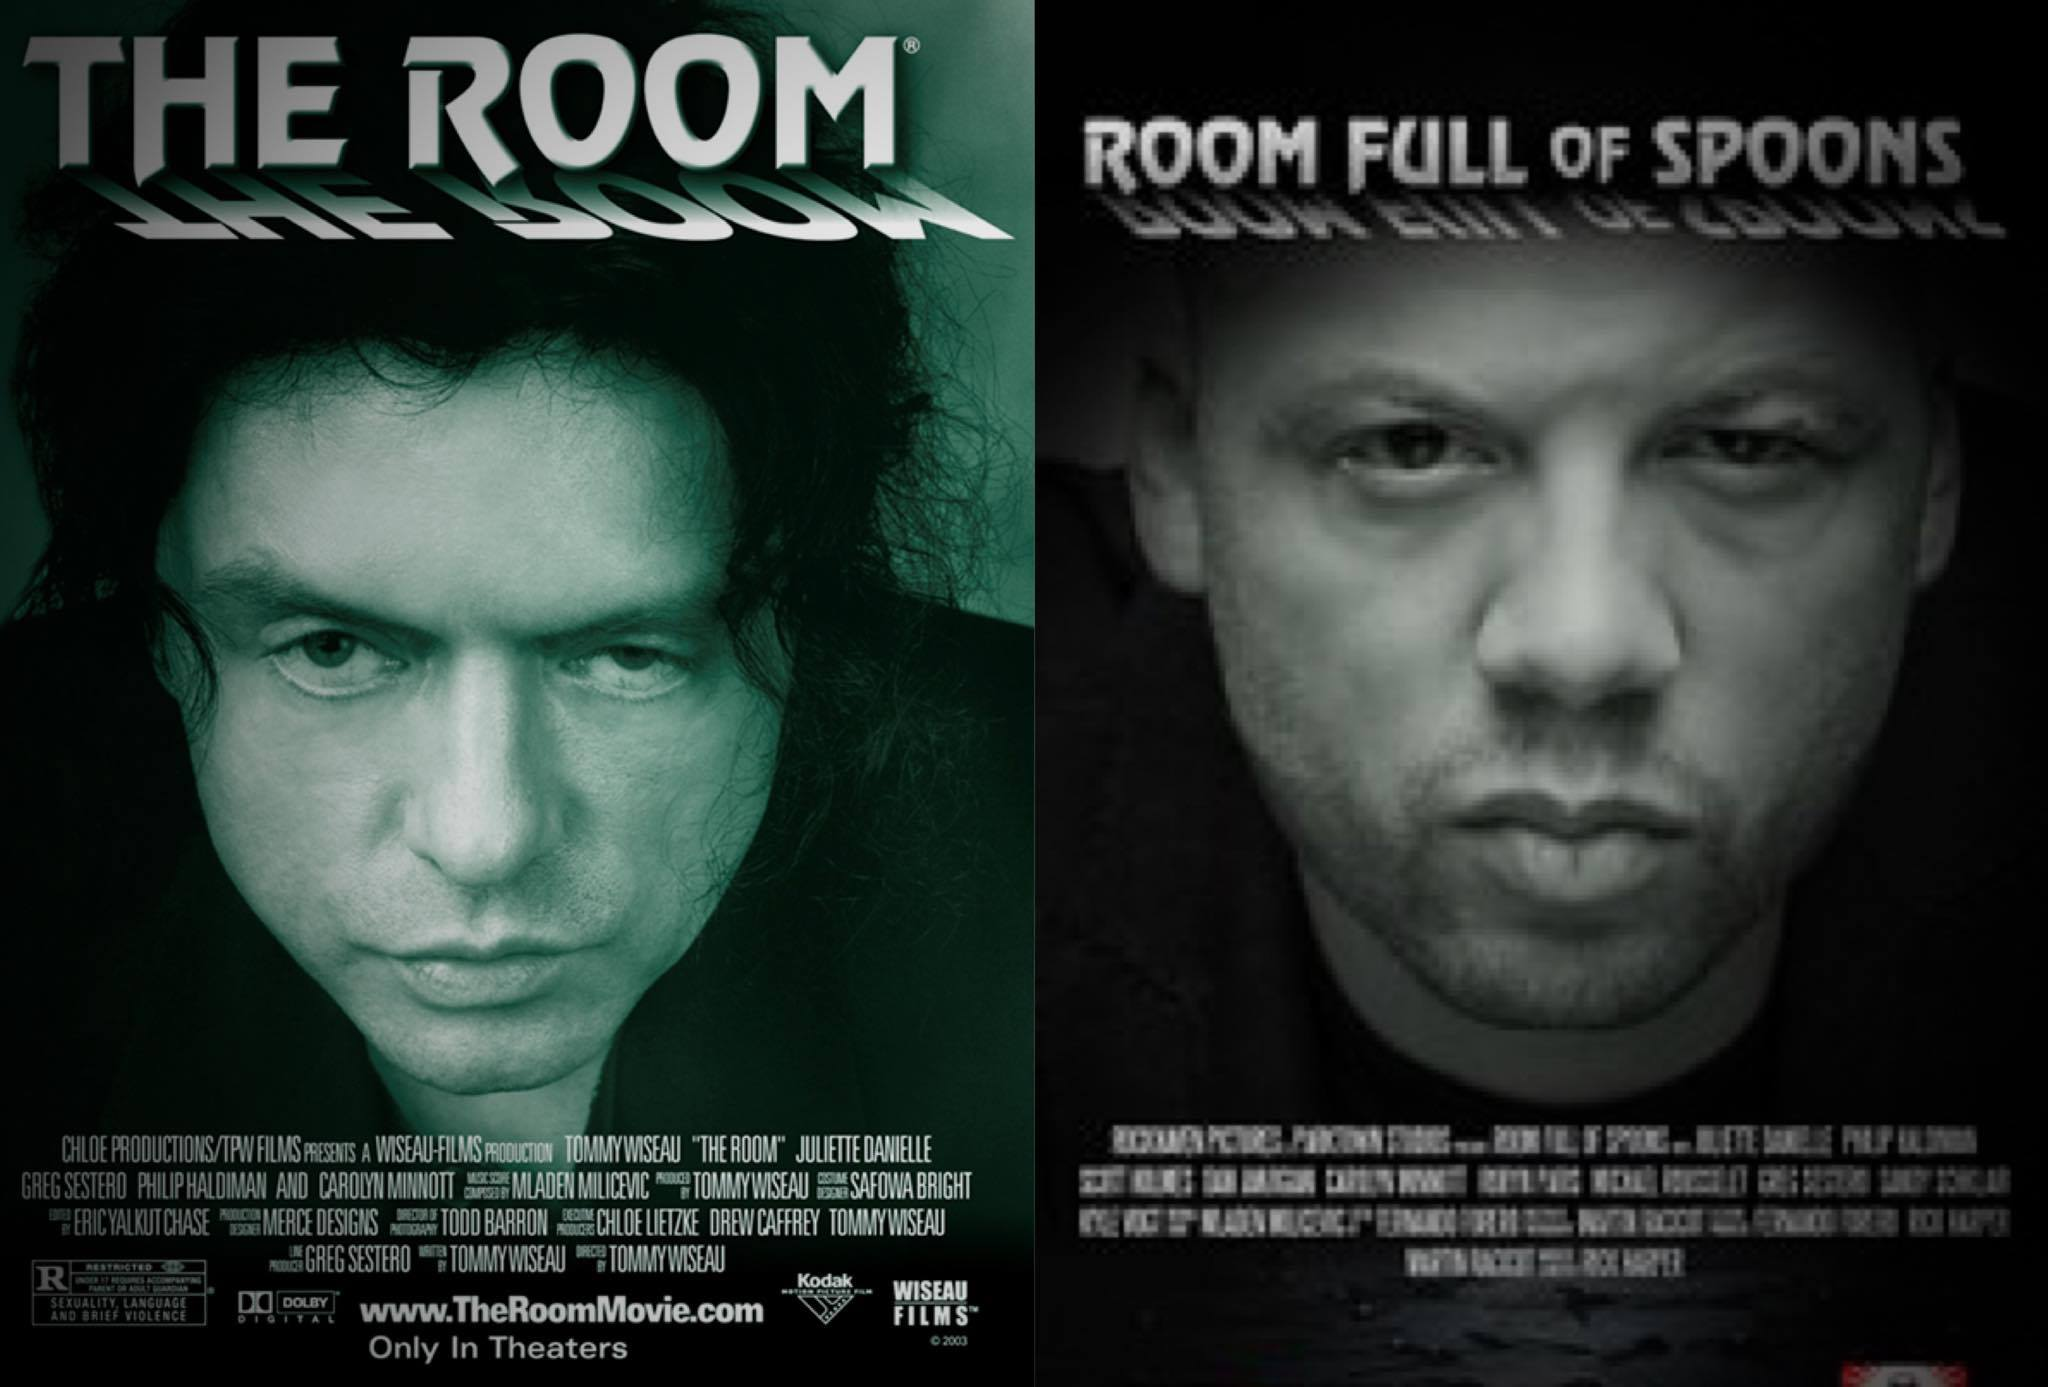 The Room Movie Spoons